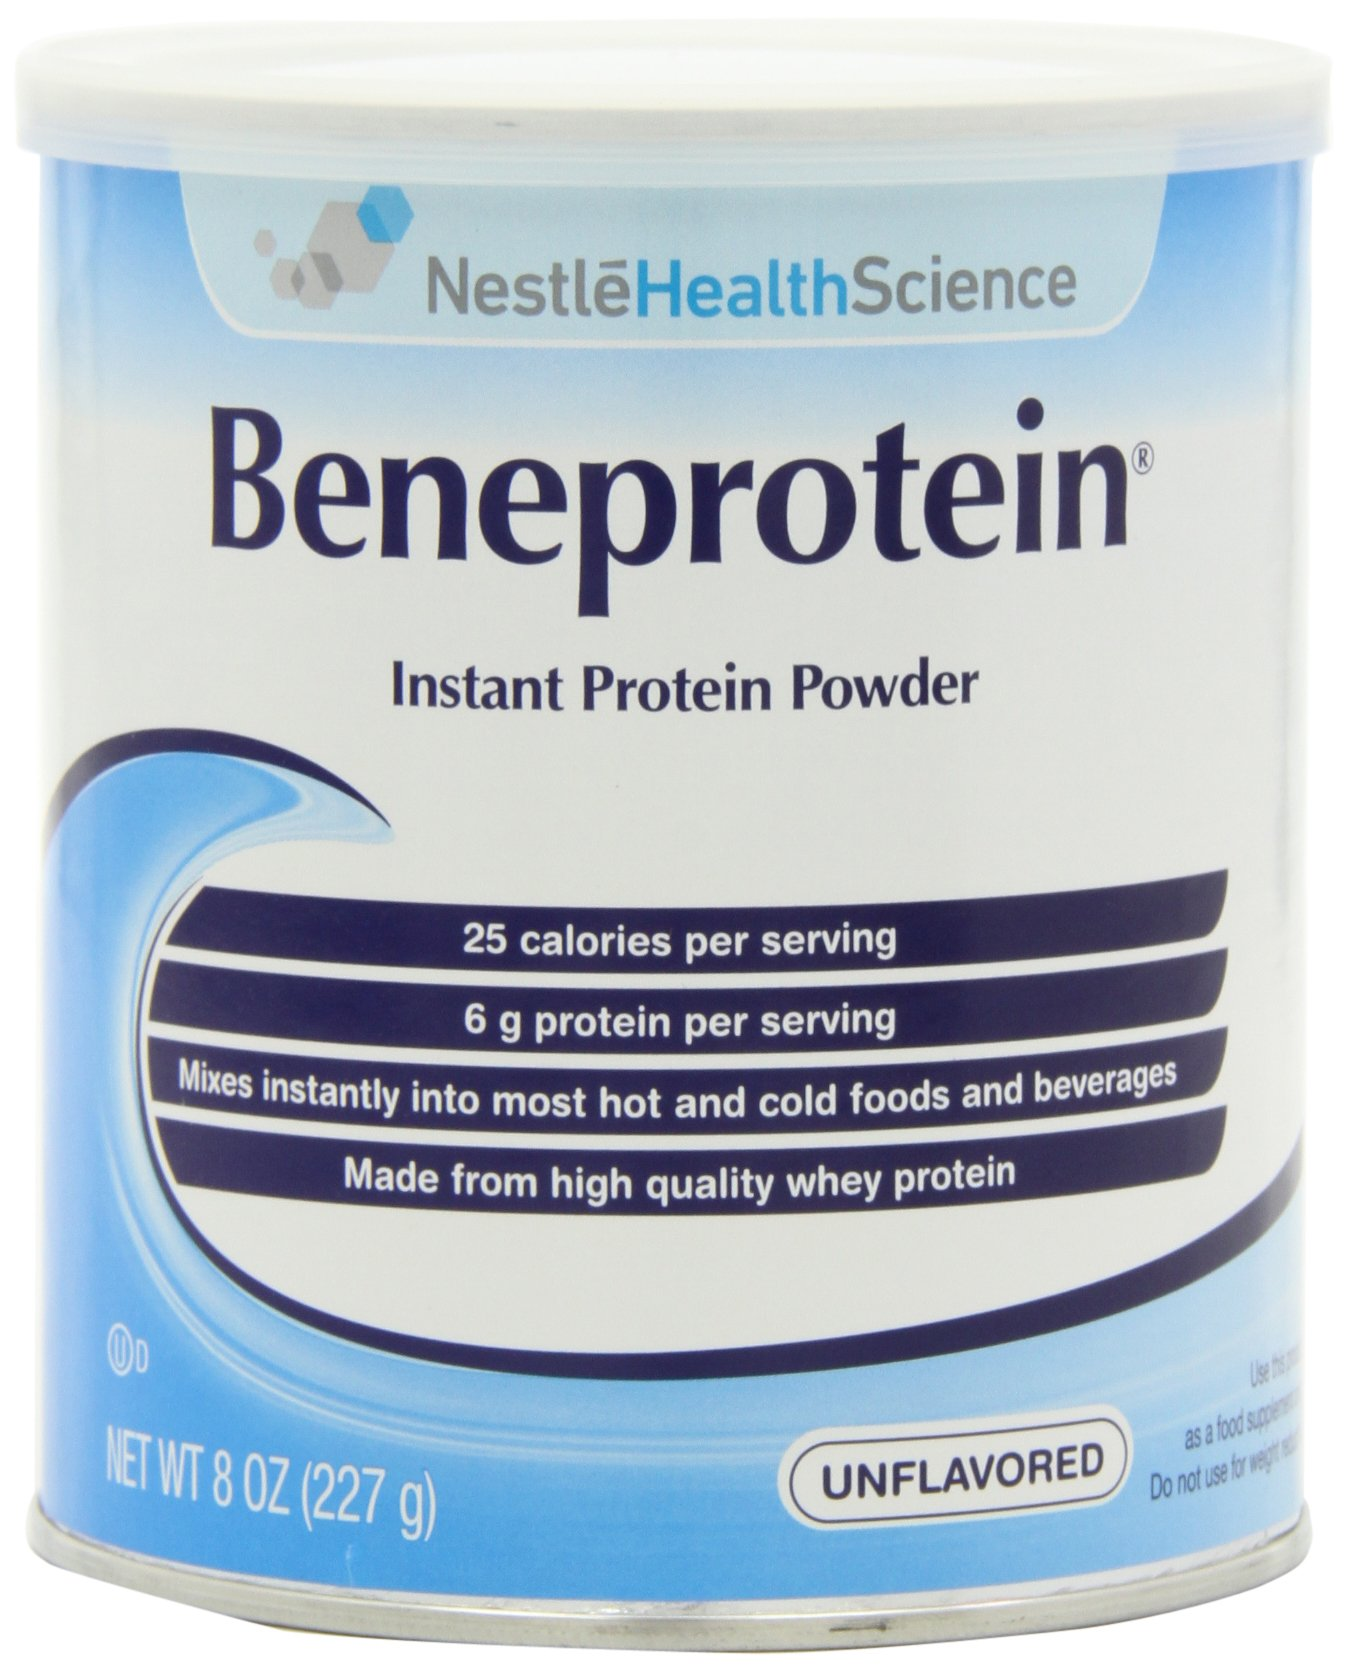 Beneprotein Instant Protein Powder, Unflavored, 8 oz (Pack of 6)